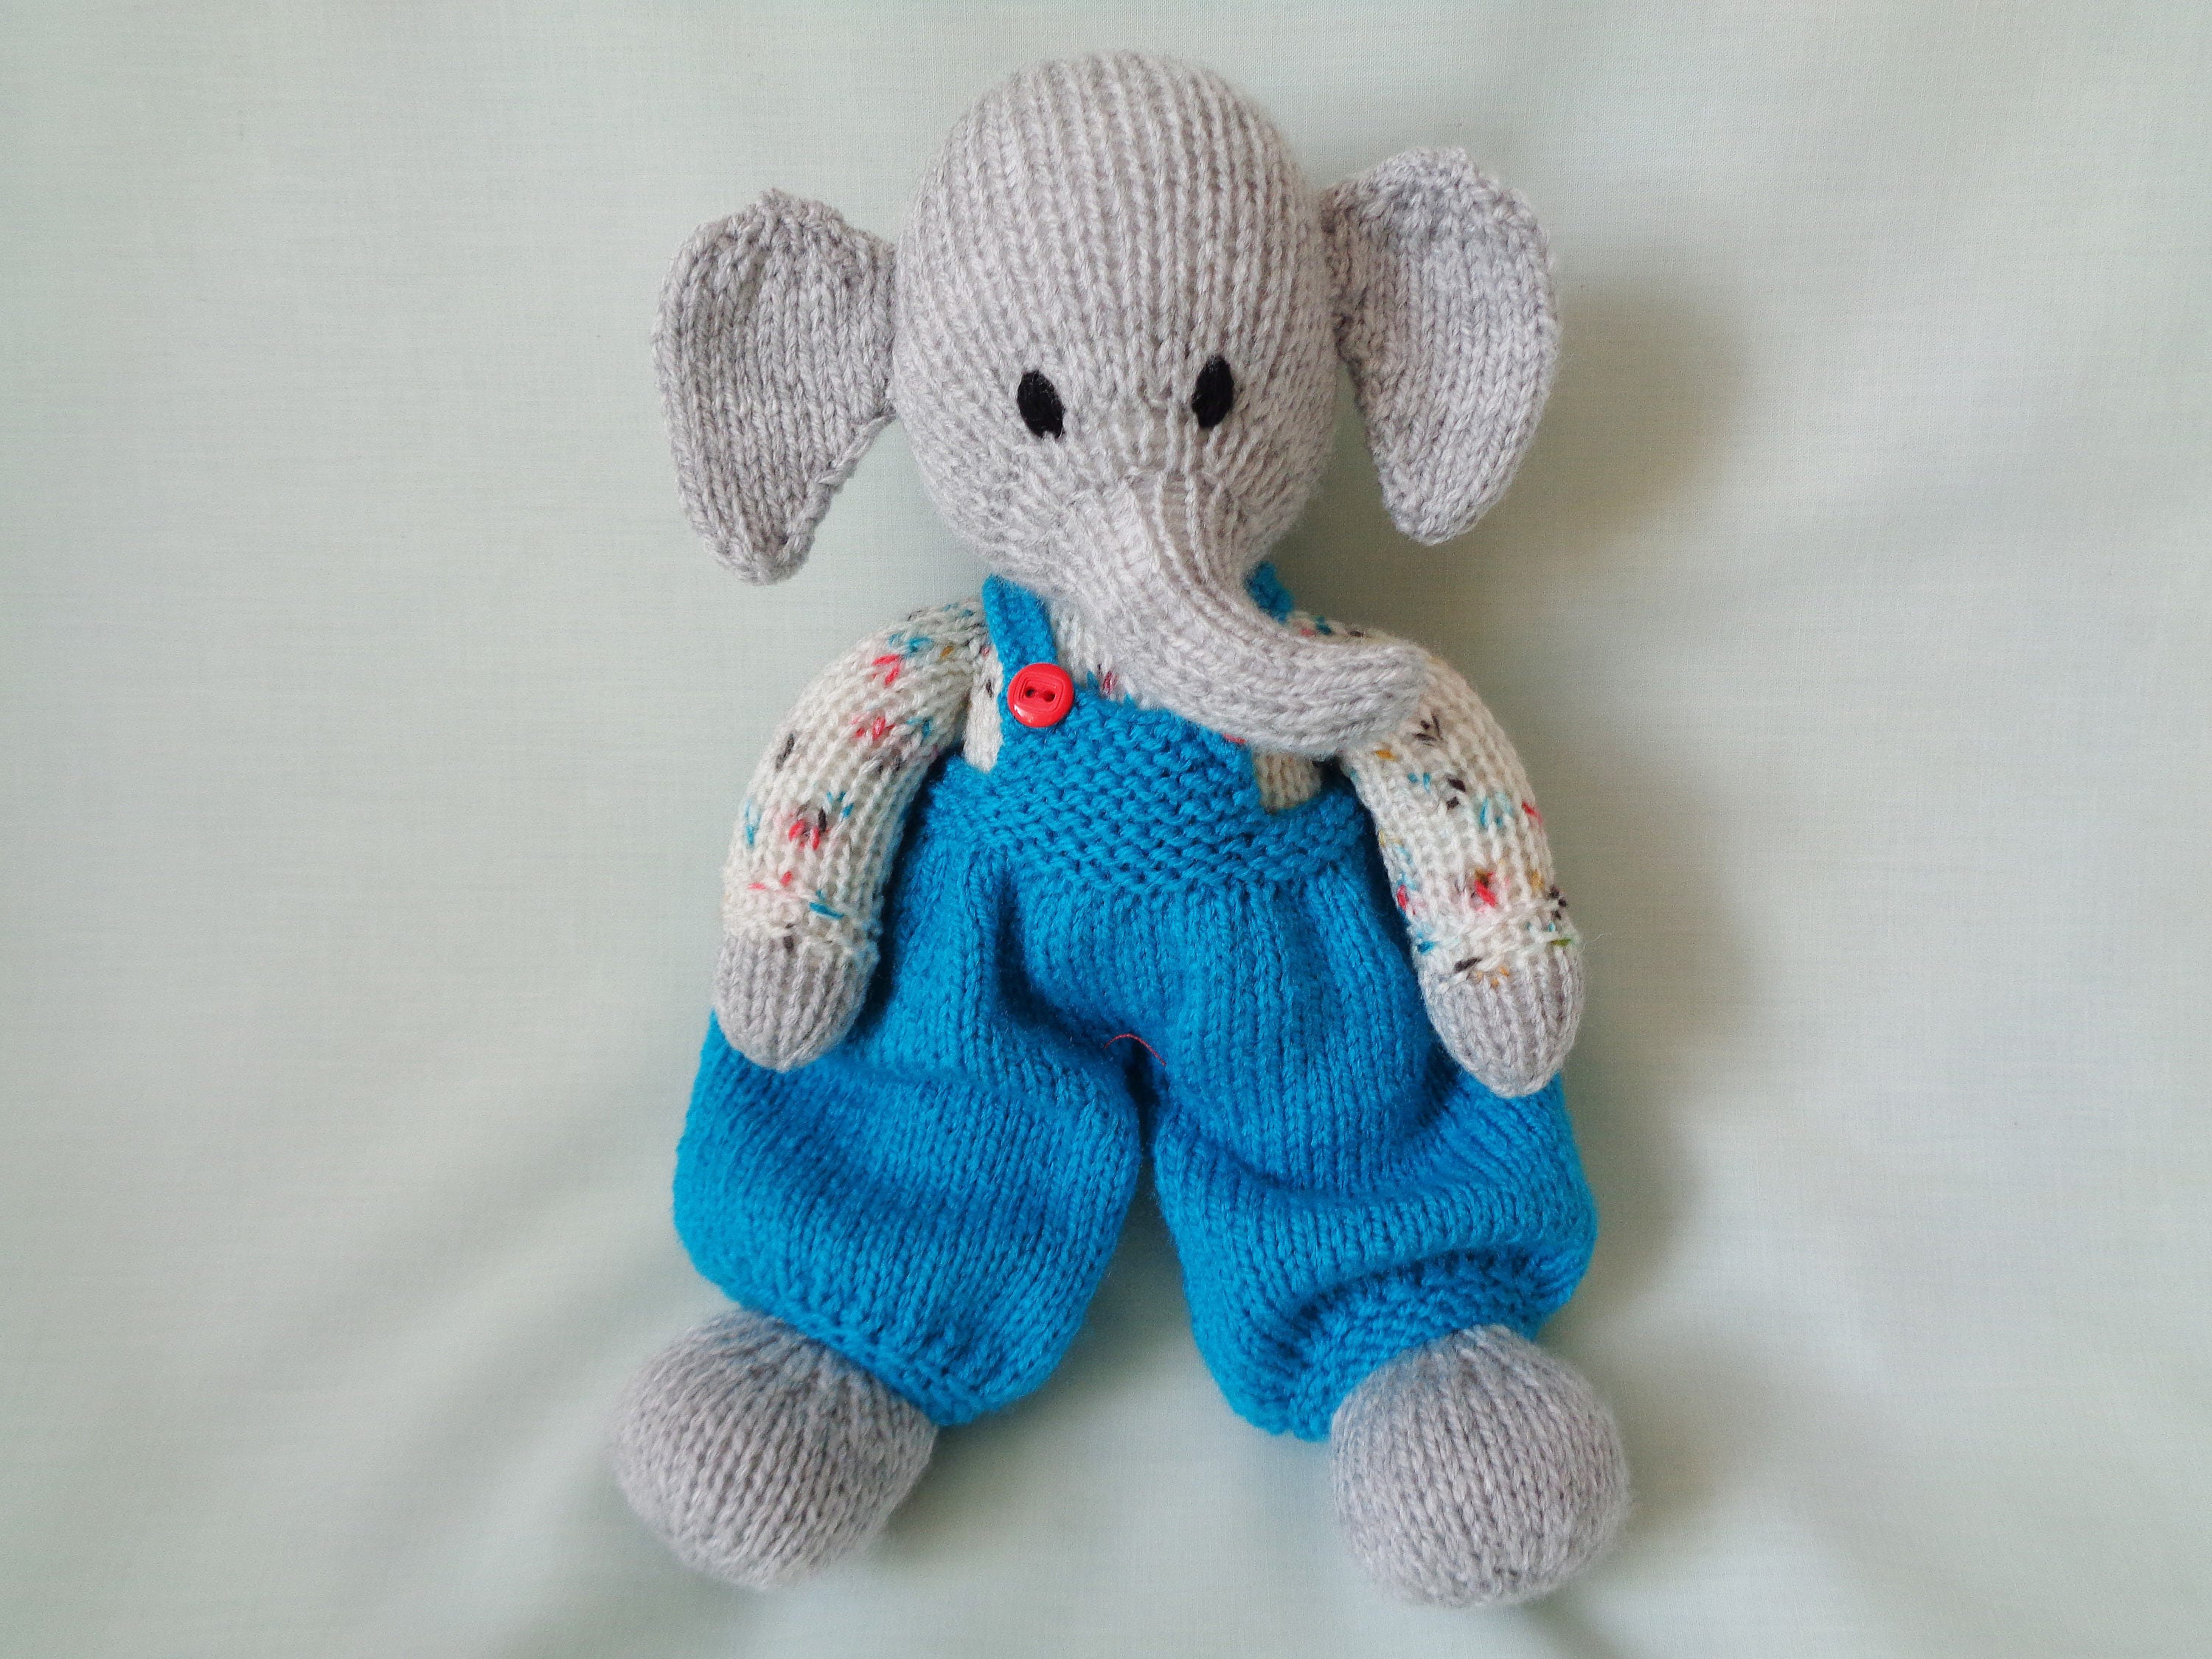 Elephant Hand Knitted Elephant Dressed Elephant Toy Elephant baby gift child gift little boy gift Nursery Decor